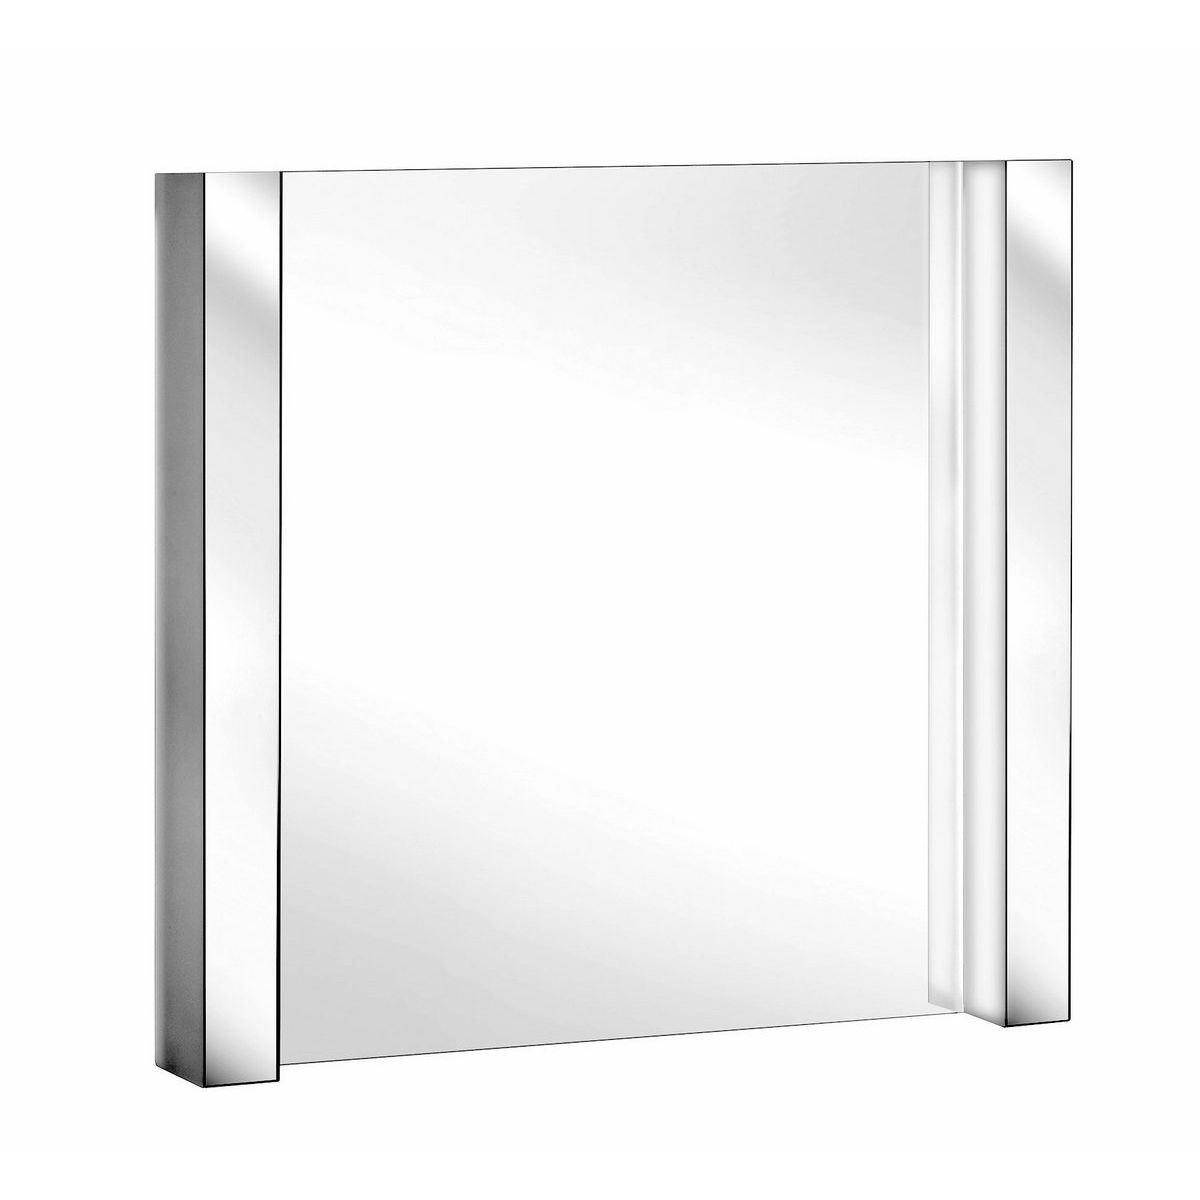 Illuminated Bathroom Mirror Keuco Elegance Illuminated Bathroom Mirror